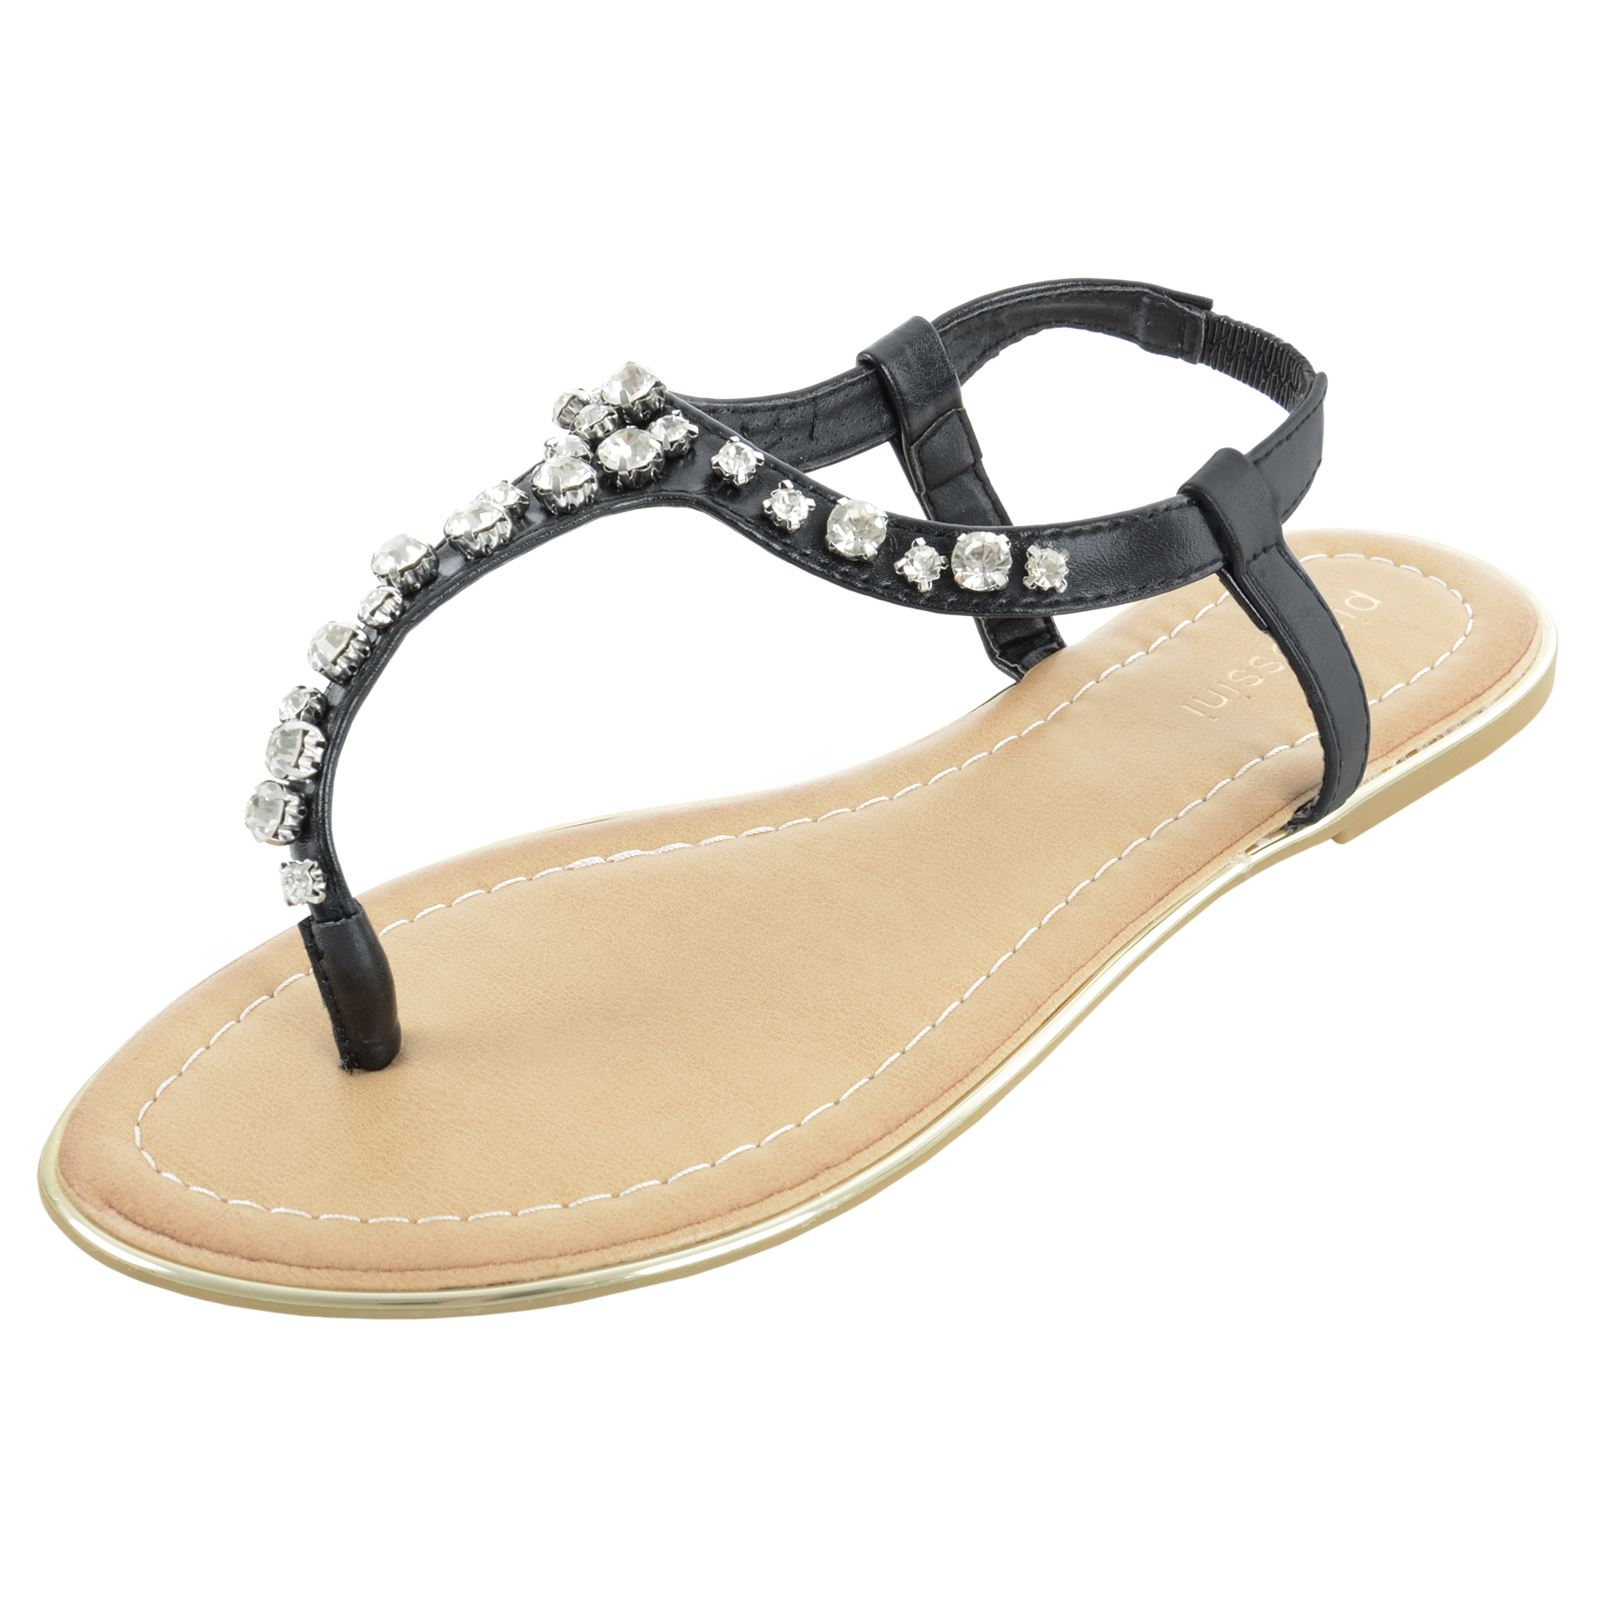 Pia Rossini Womens Sandals Slip On Flat Summer Beach Holiday Diamante Ladies